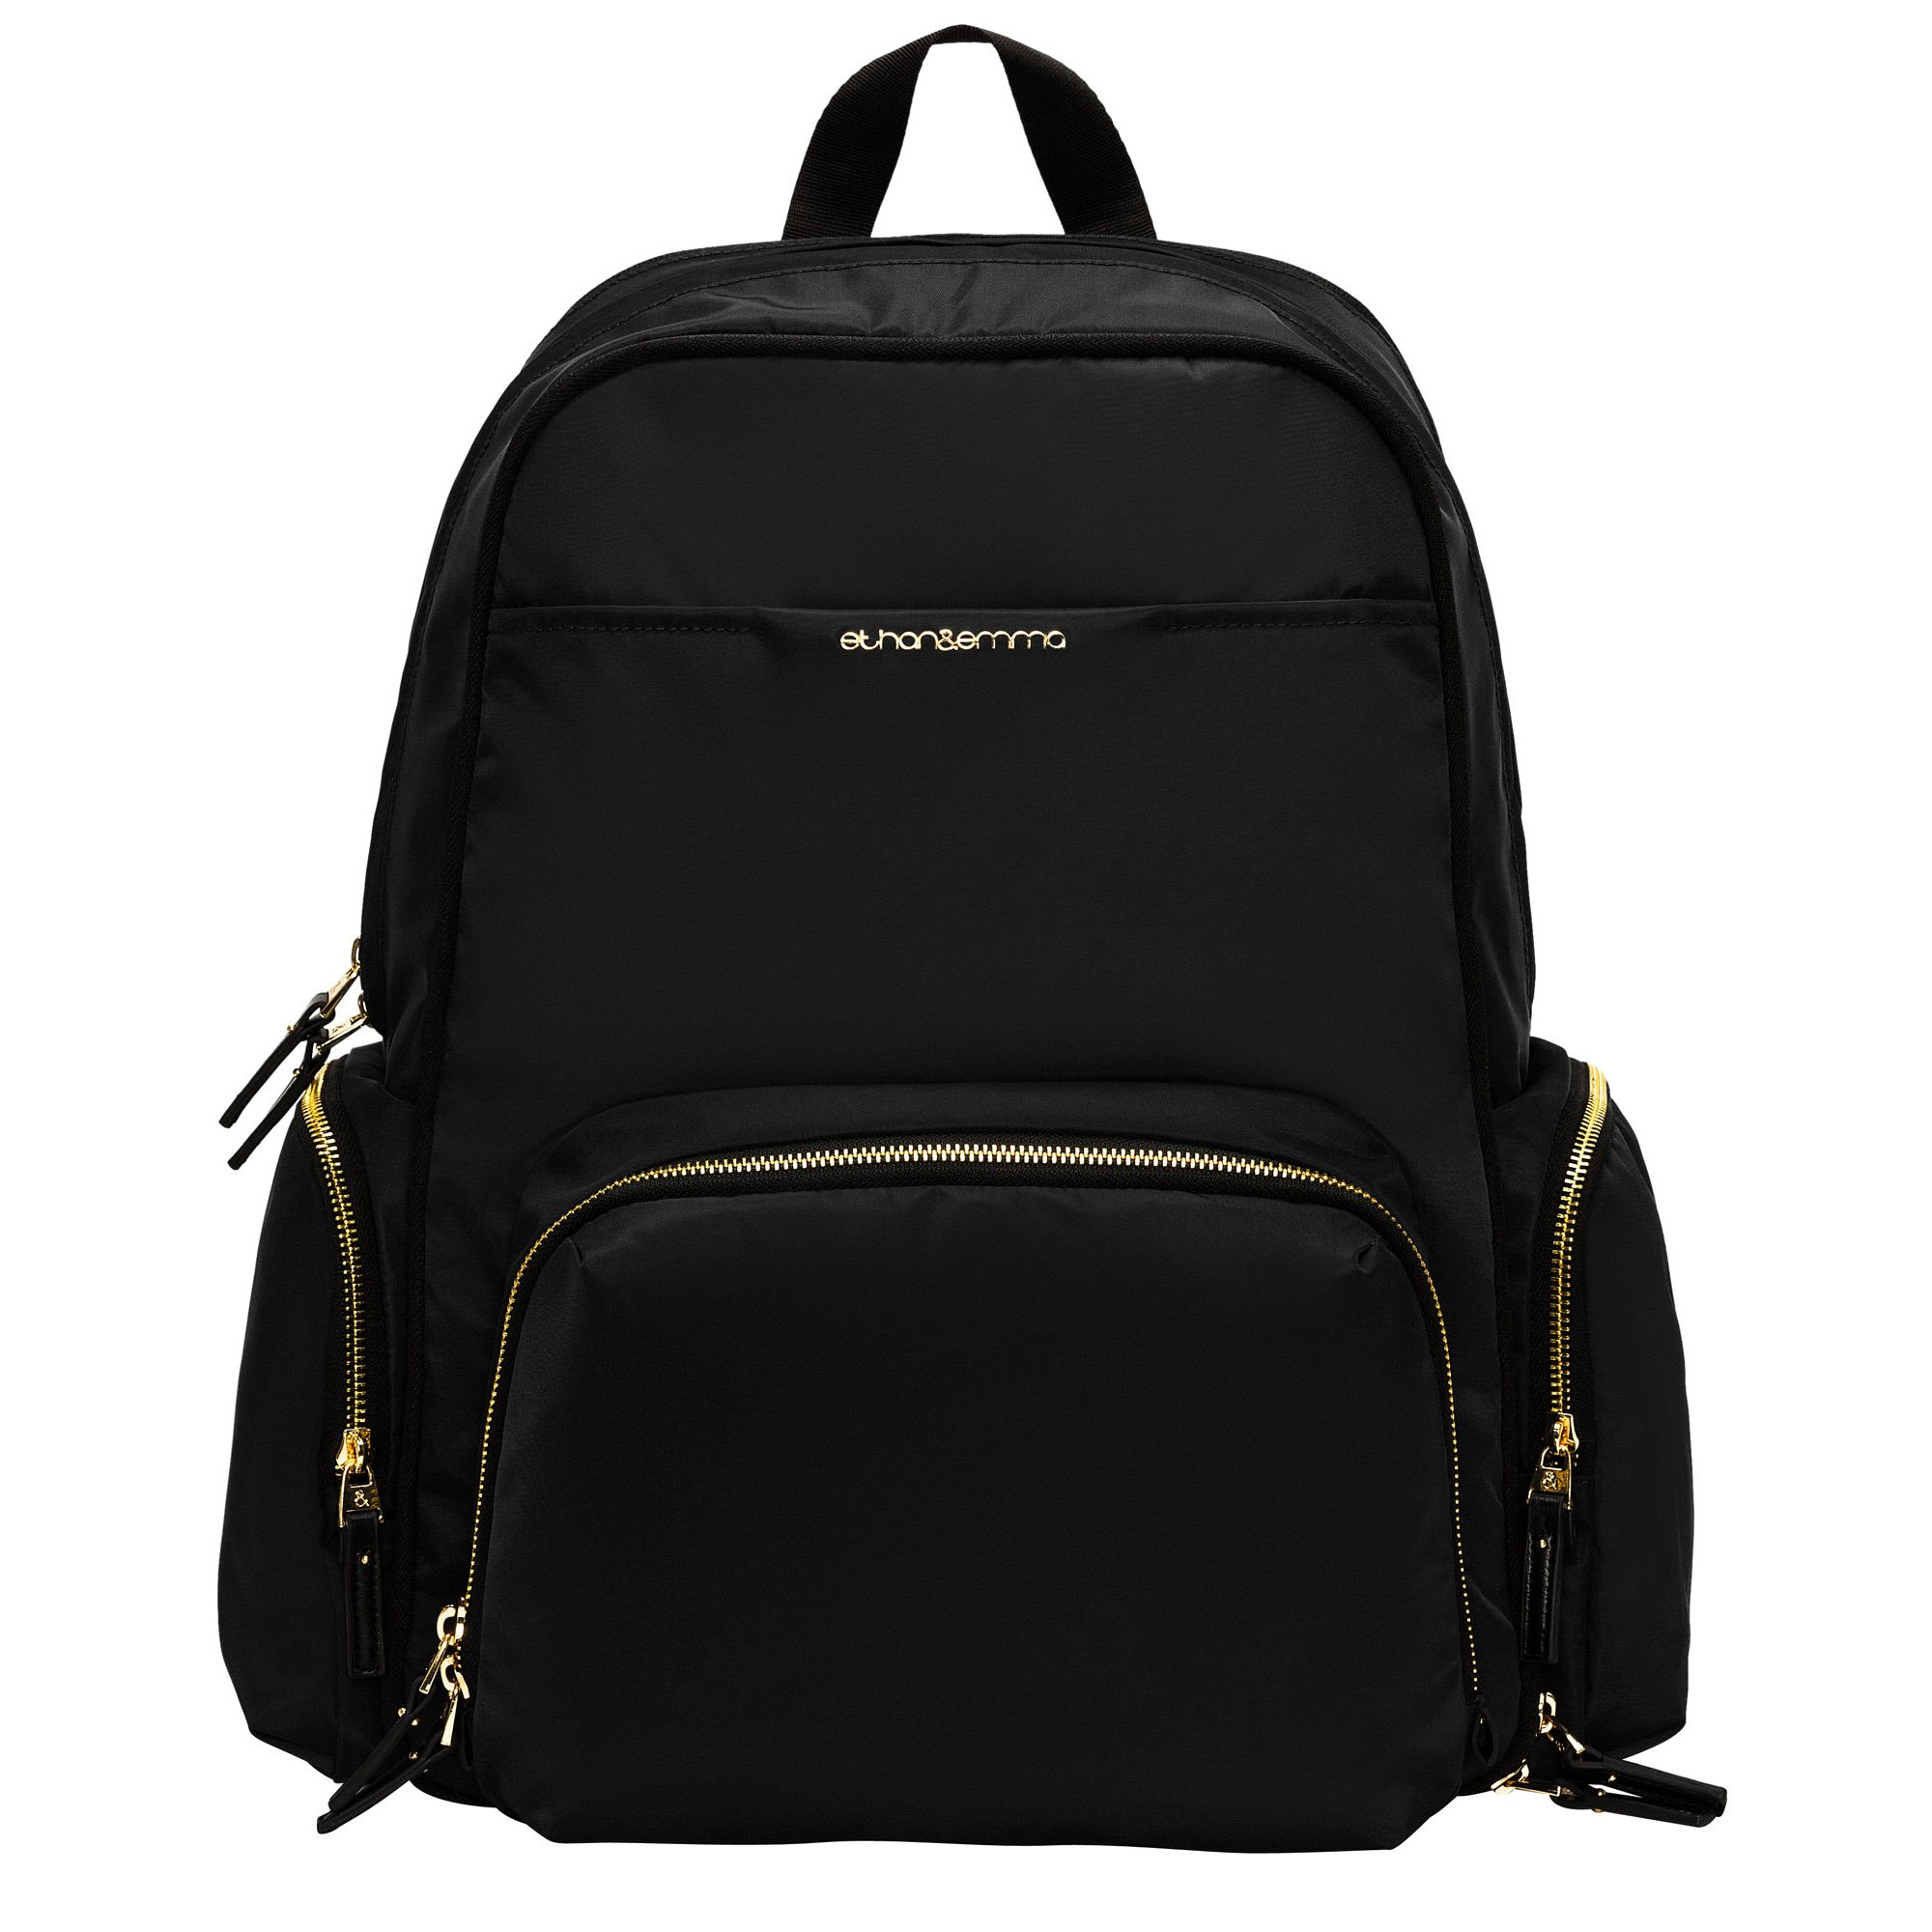 """Best Baby Diaper Bag Backpack for Stylish Women, """"The Balance Series"""" by Ethan & Emma, Beautiful Designer Quality Bags for Moms, Extra Durable for Travel, Tons of Organizer Pockets & Space"""